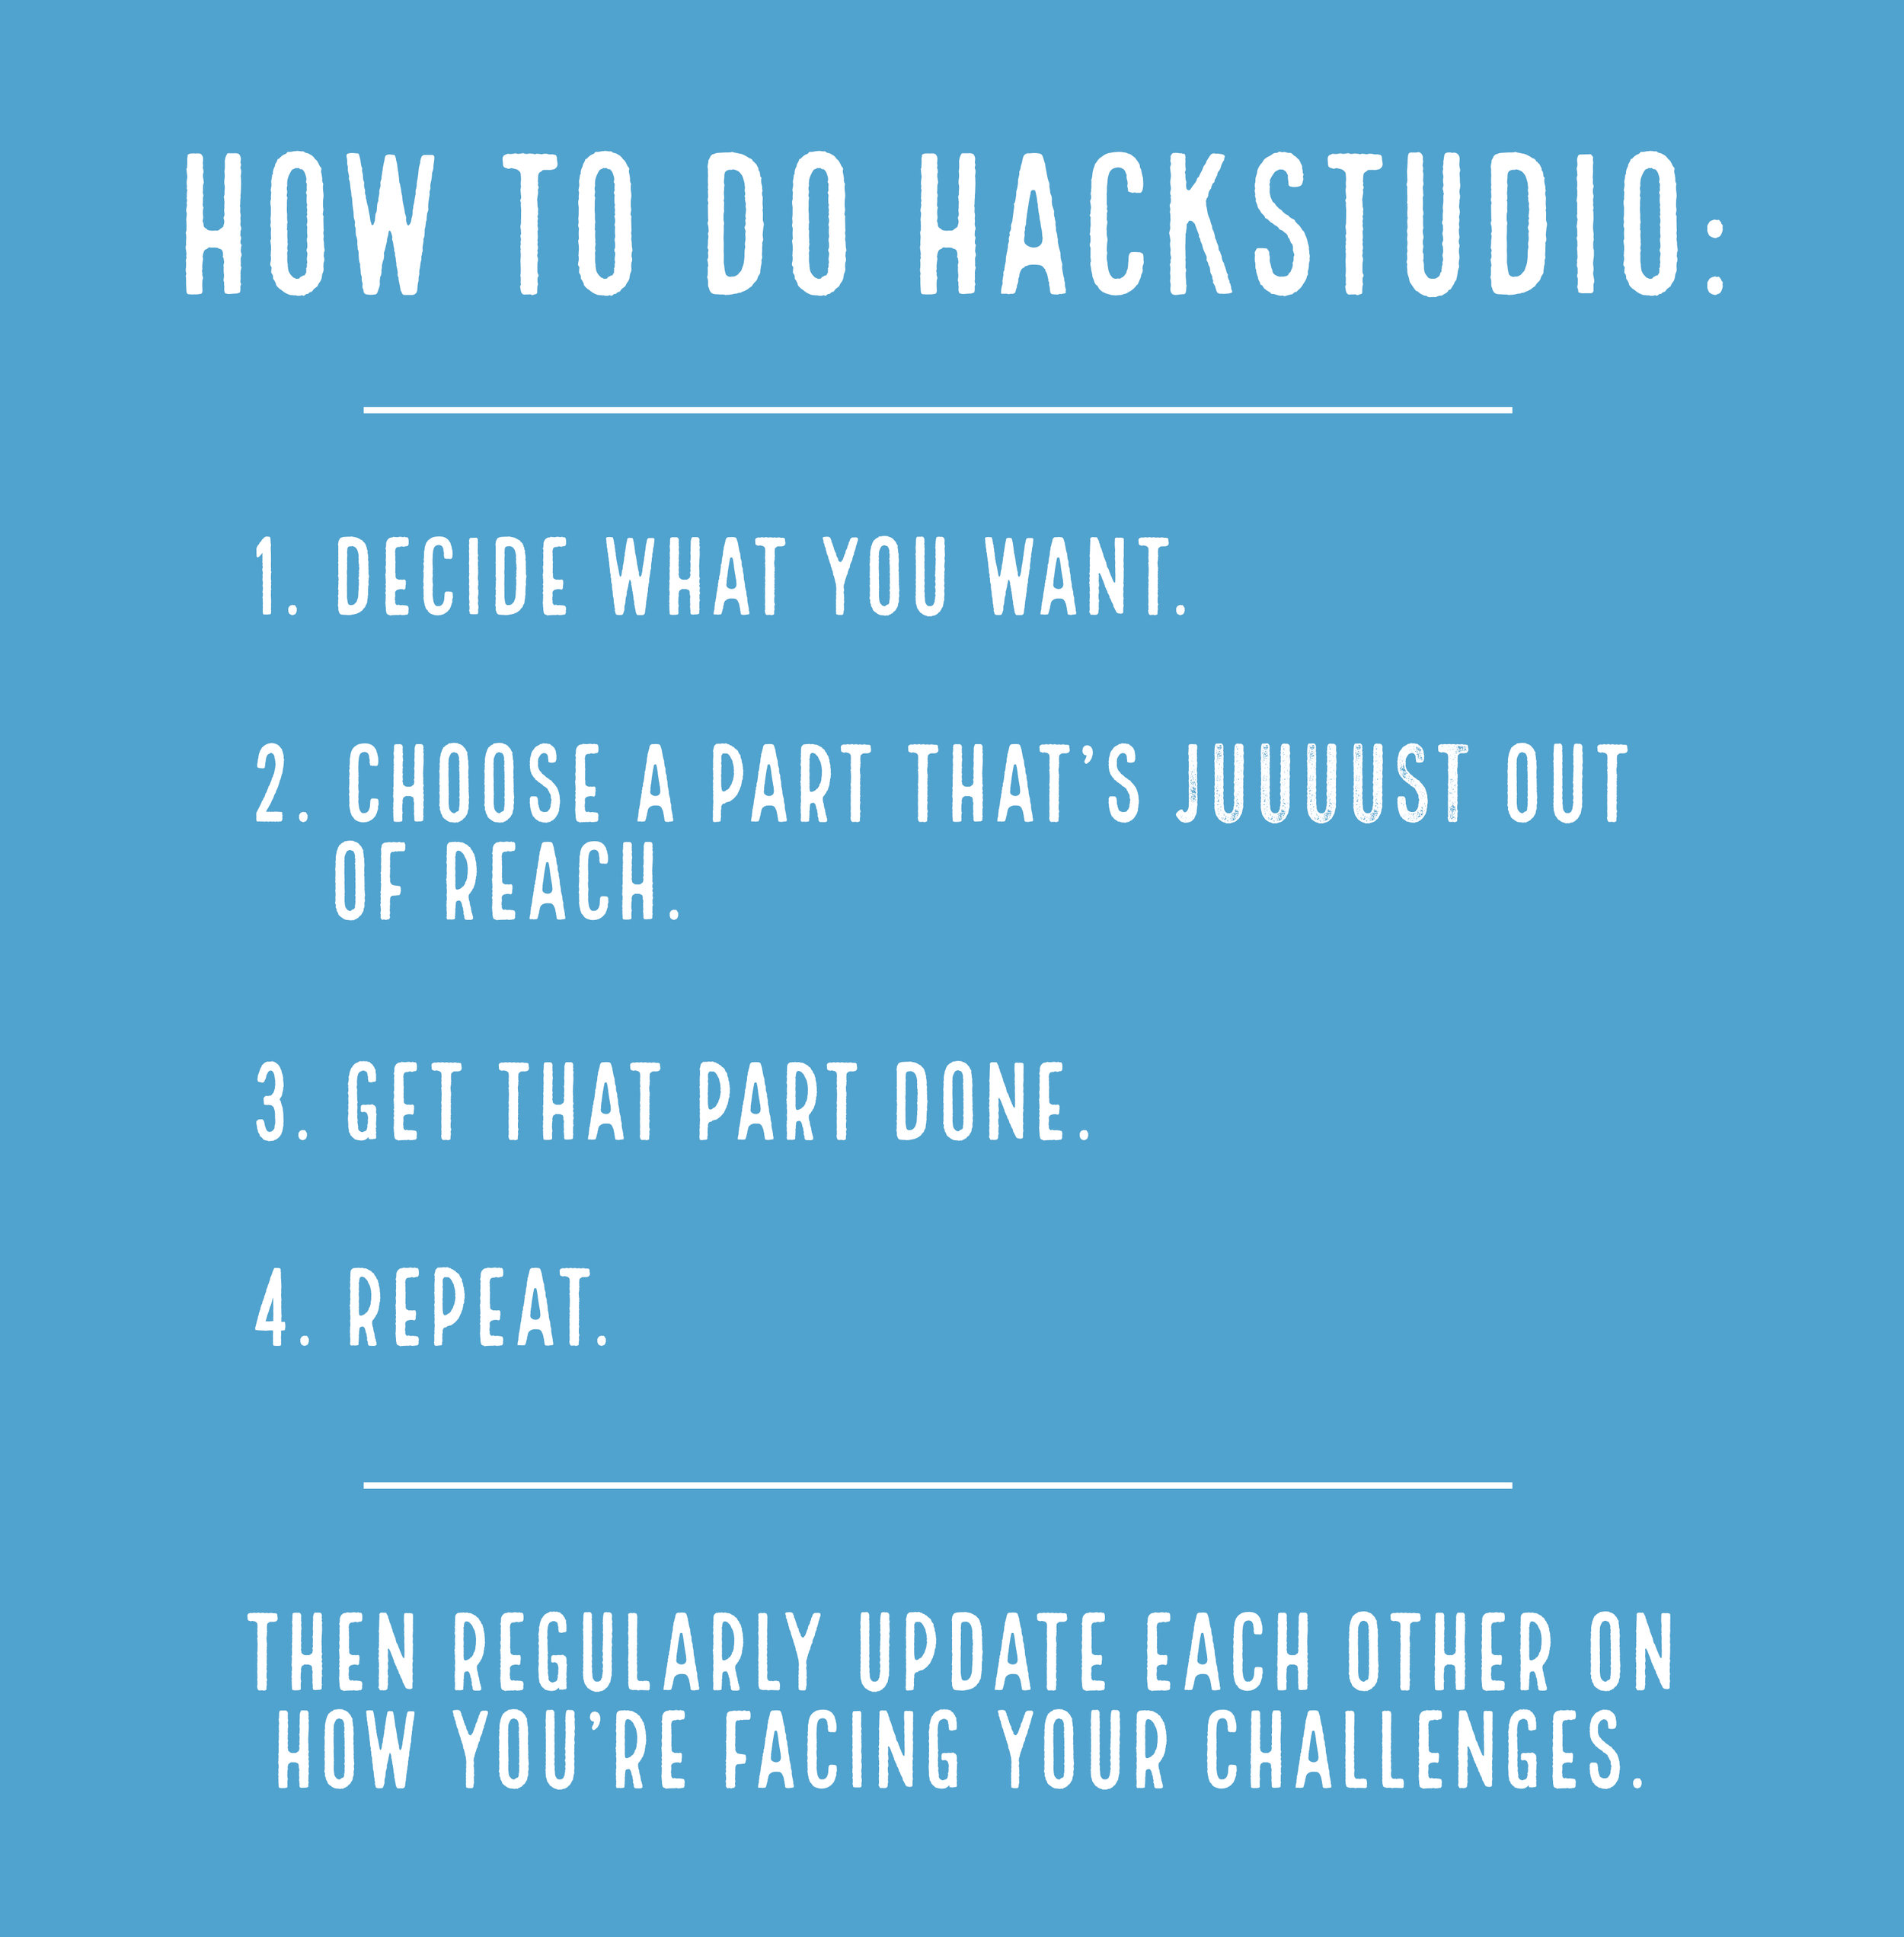 How To Do Hackstudio - Kids 01-2018.jpg